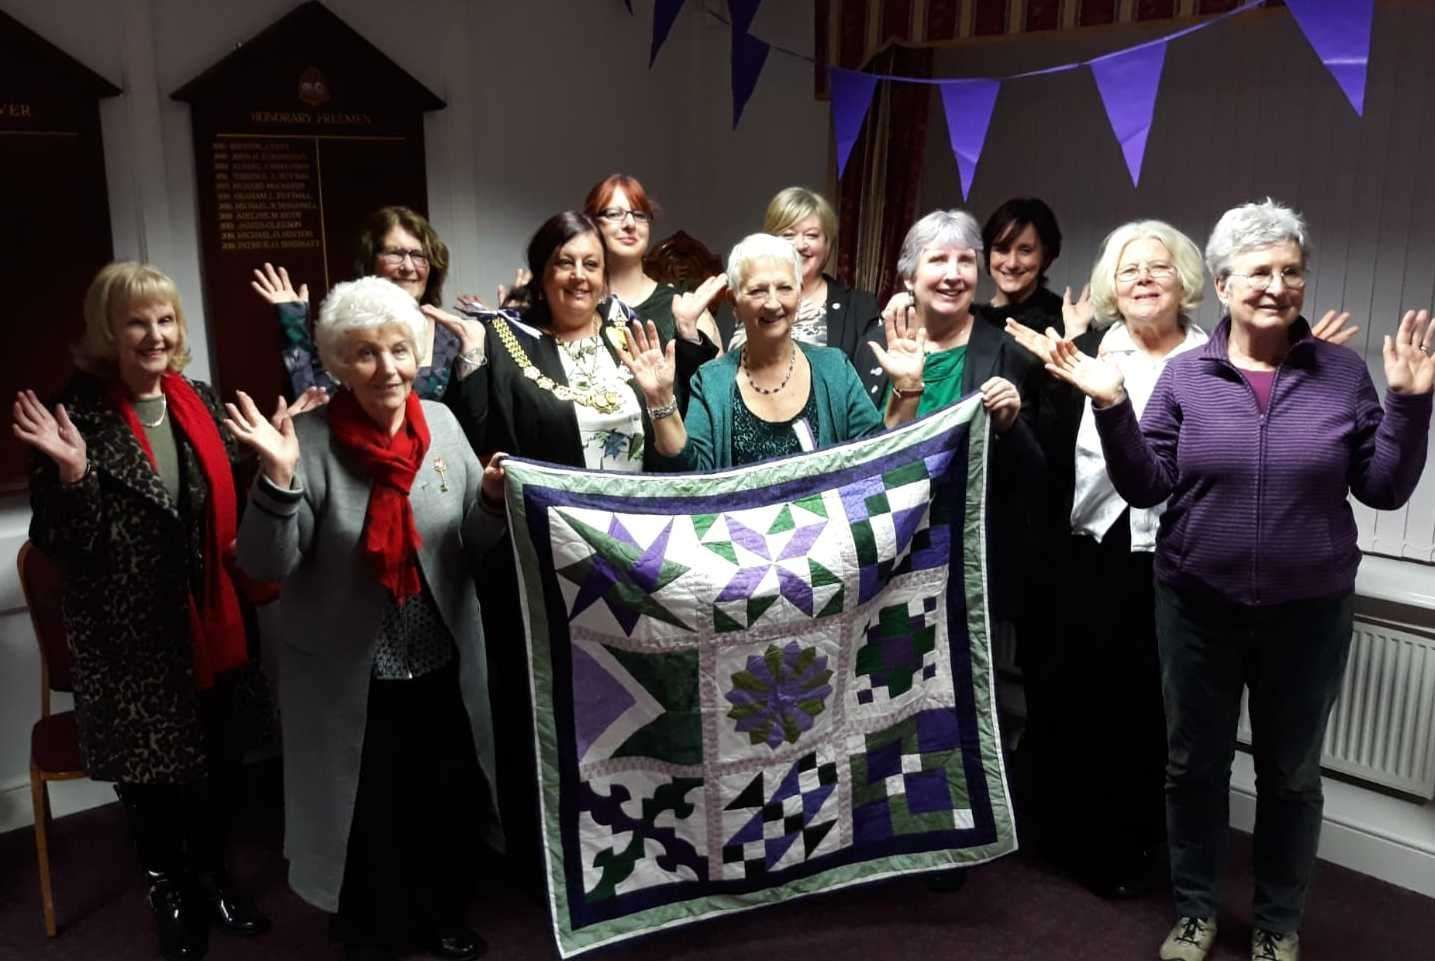 The Dover celebration of International Women's Day with a quilt as a raffle prize. Picture: Dover Town Council